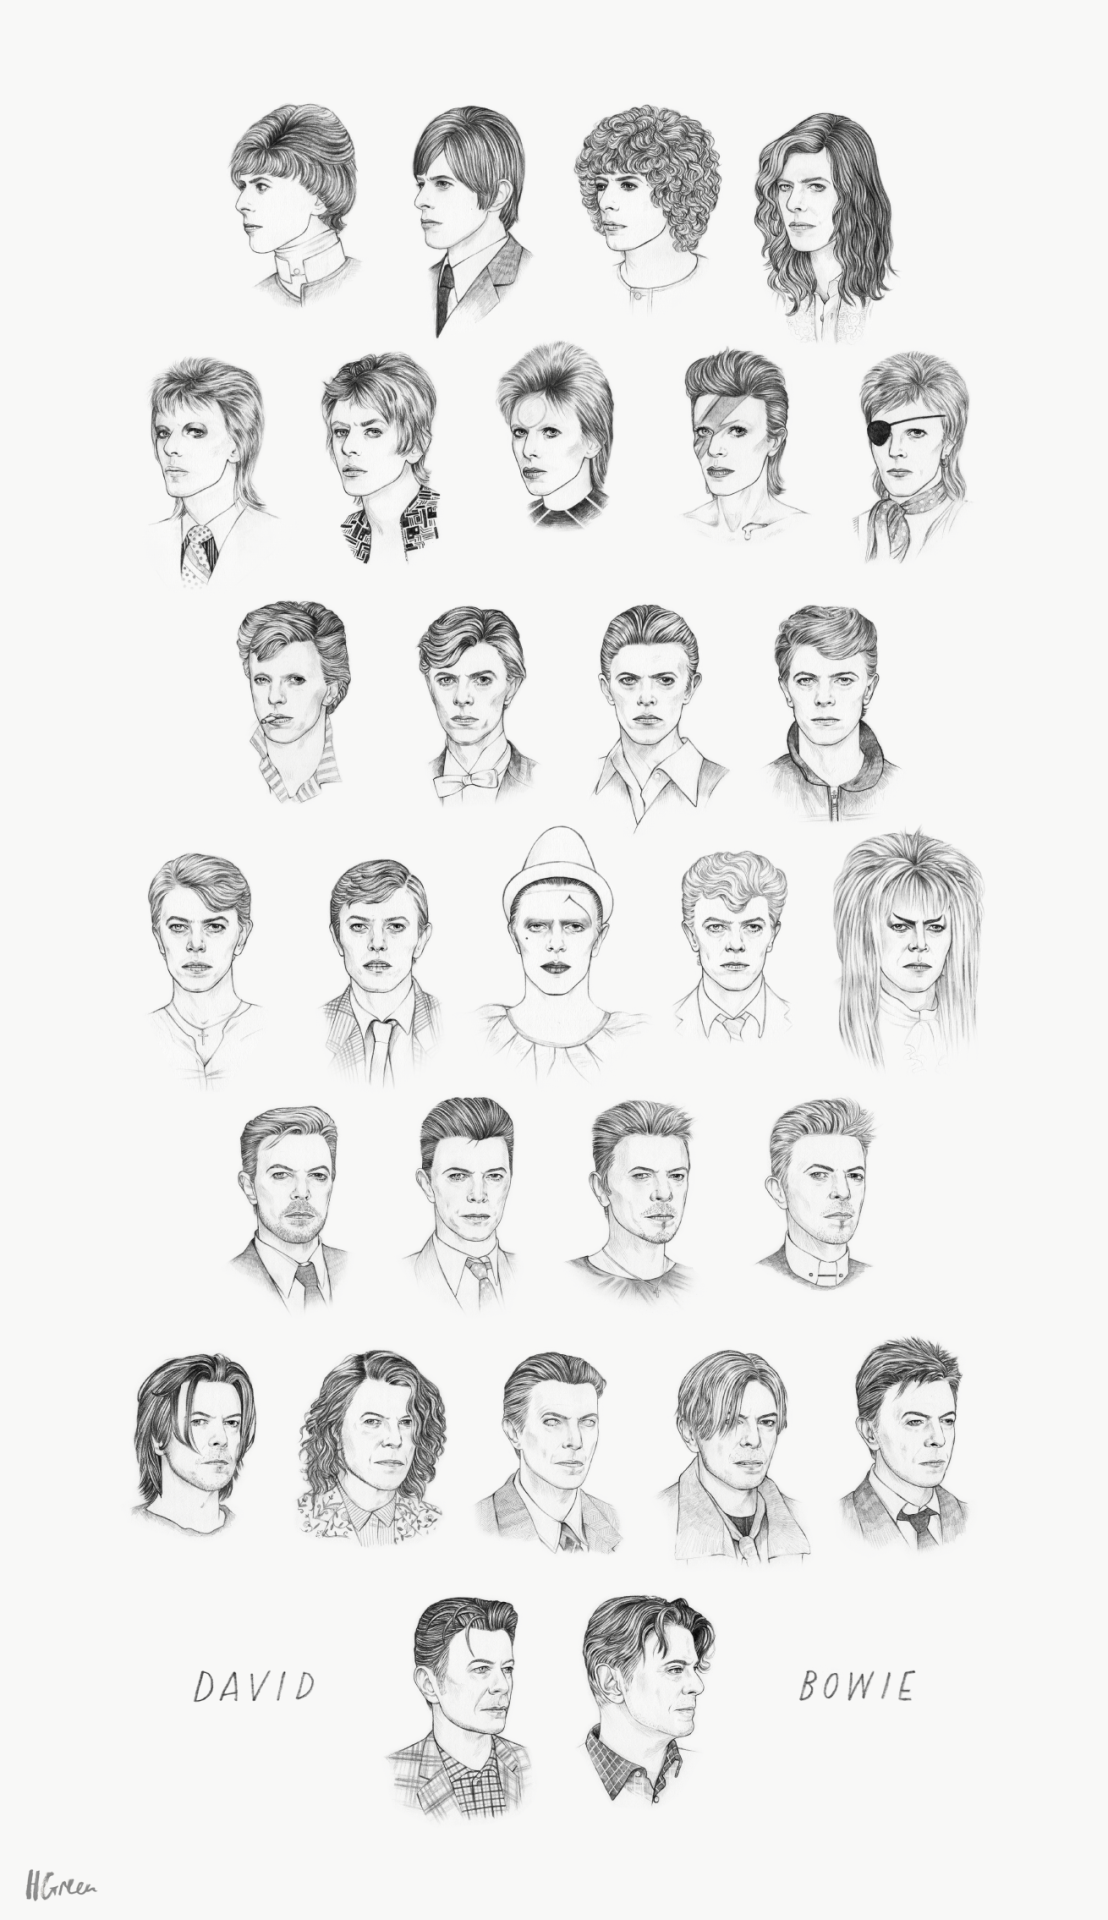 See David Bowie transform over the years in one animated GIF